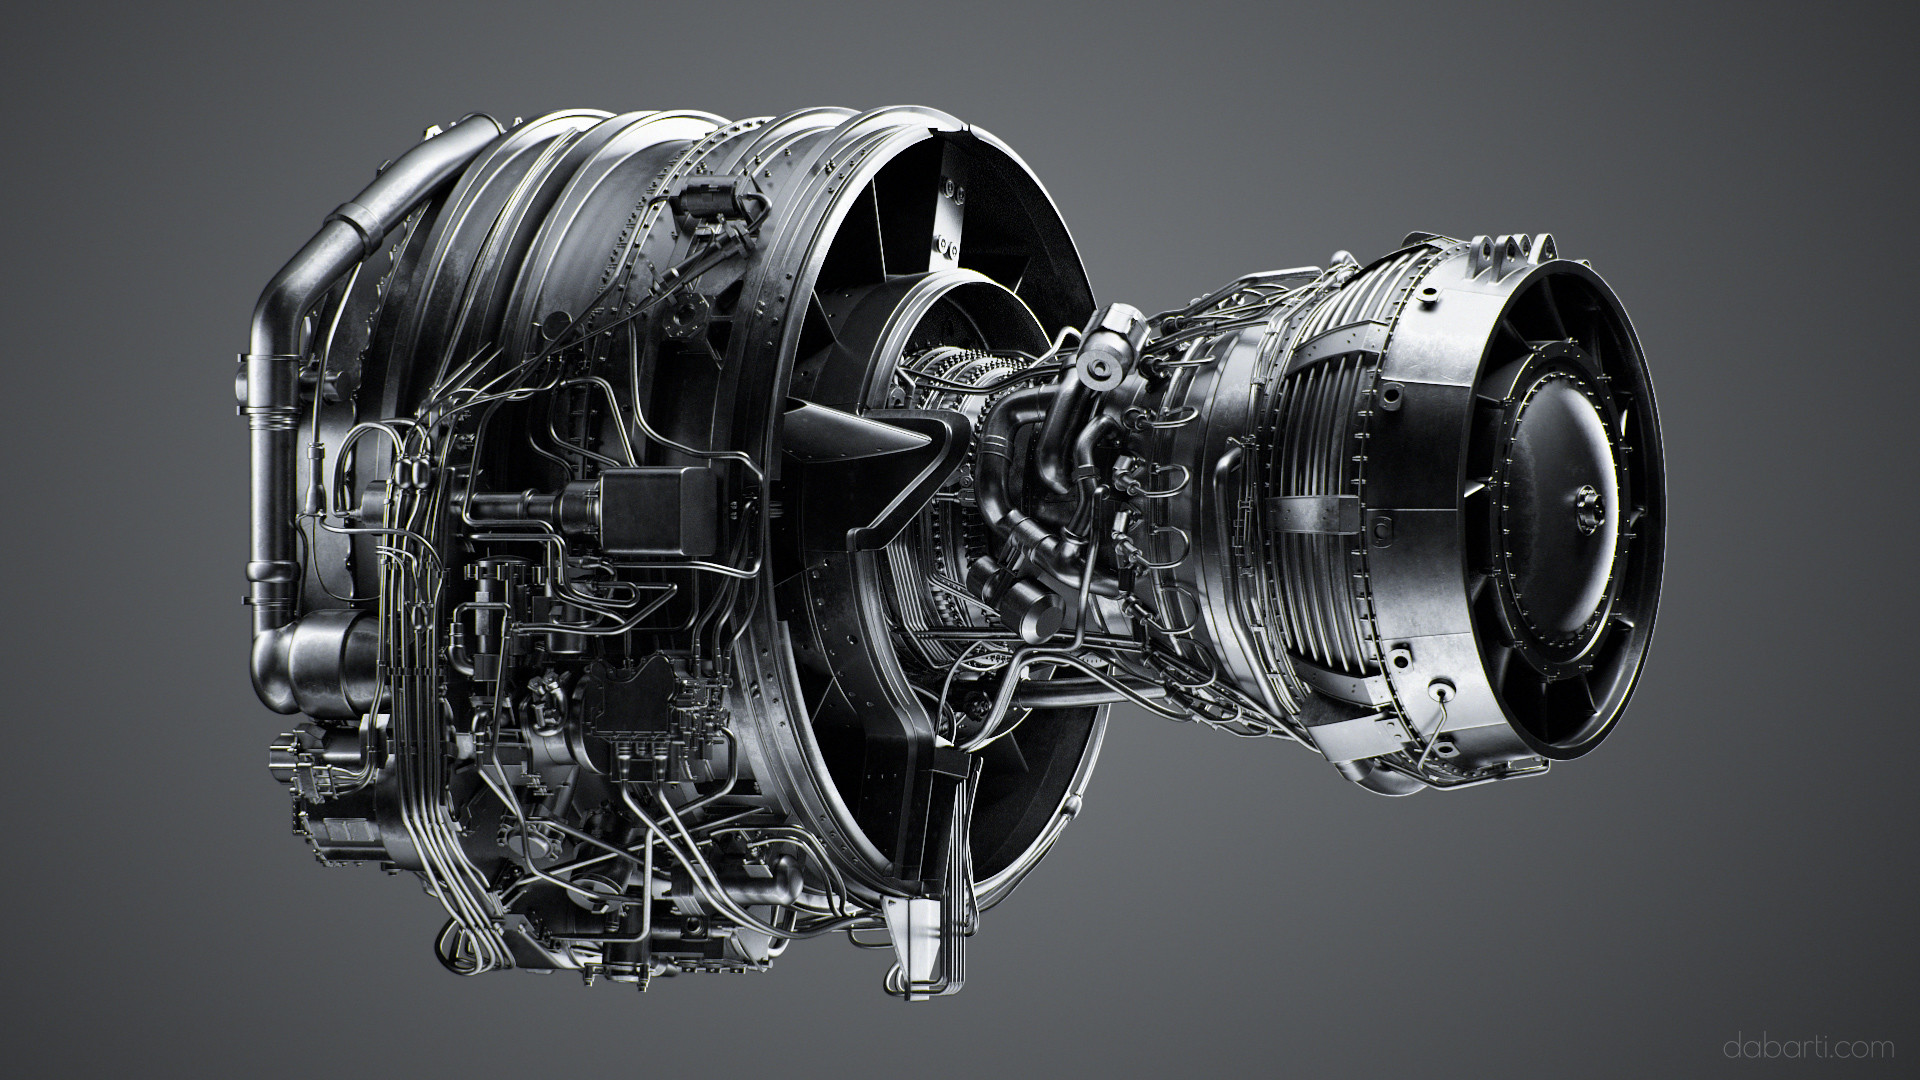 Wallpaper aircraft engine impre media - Jet engine wallpaper ...